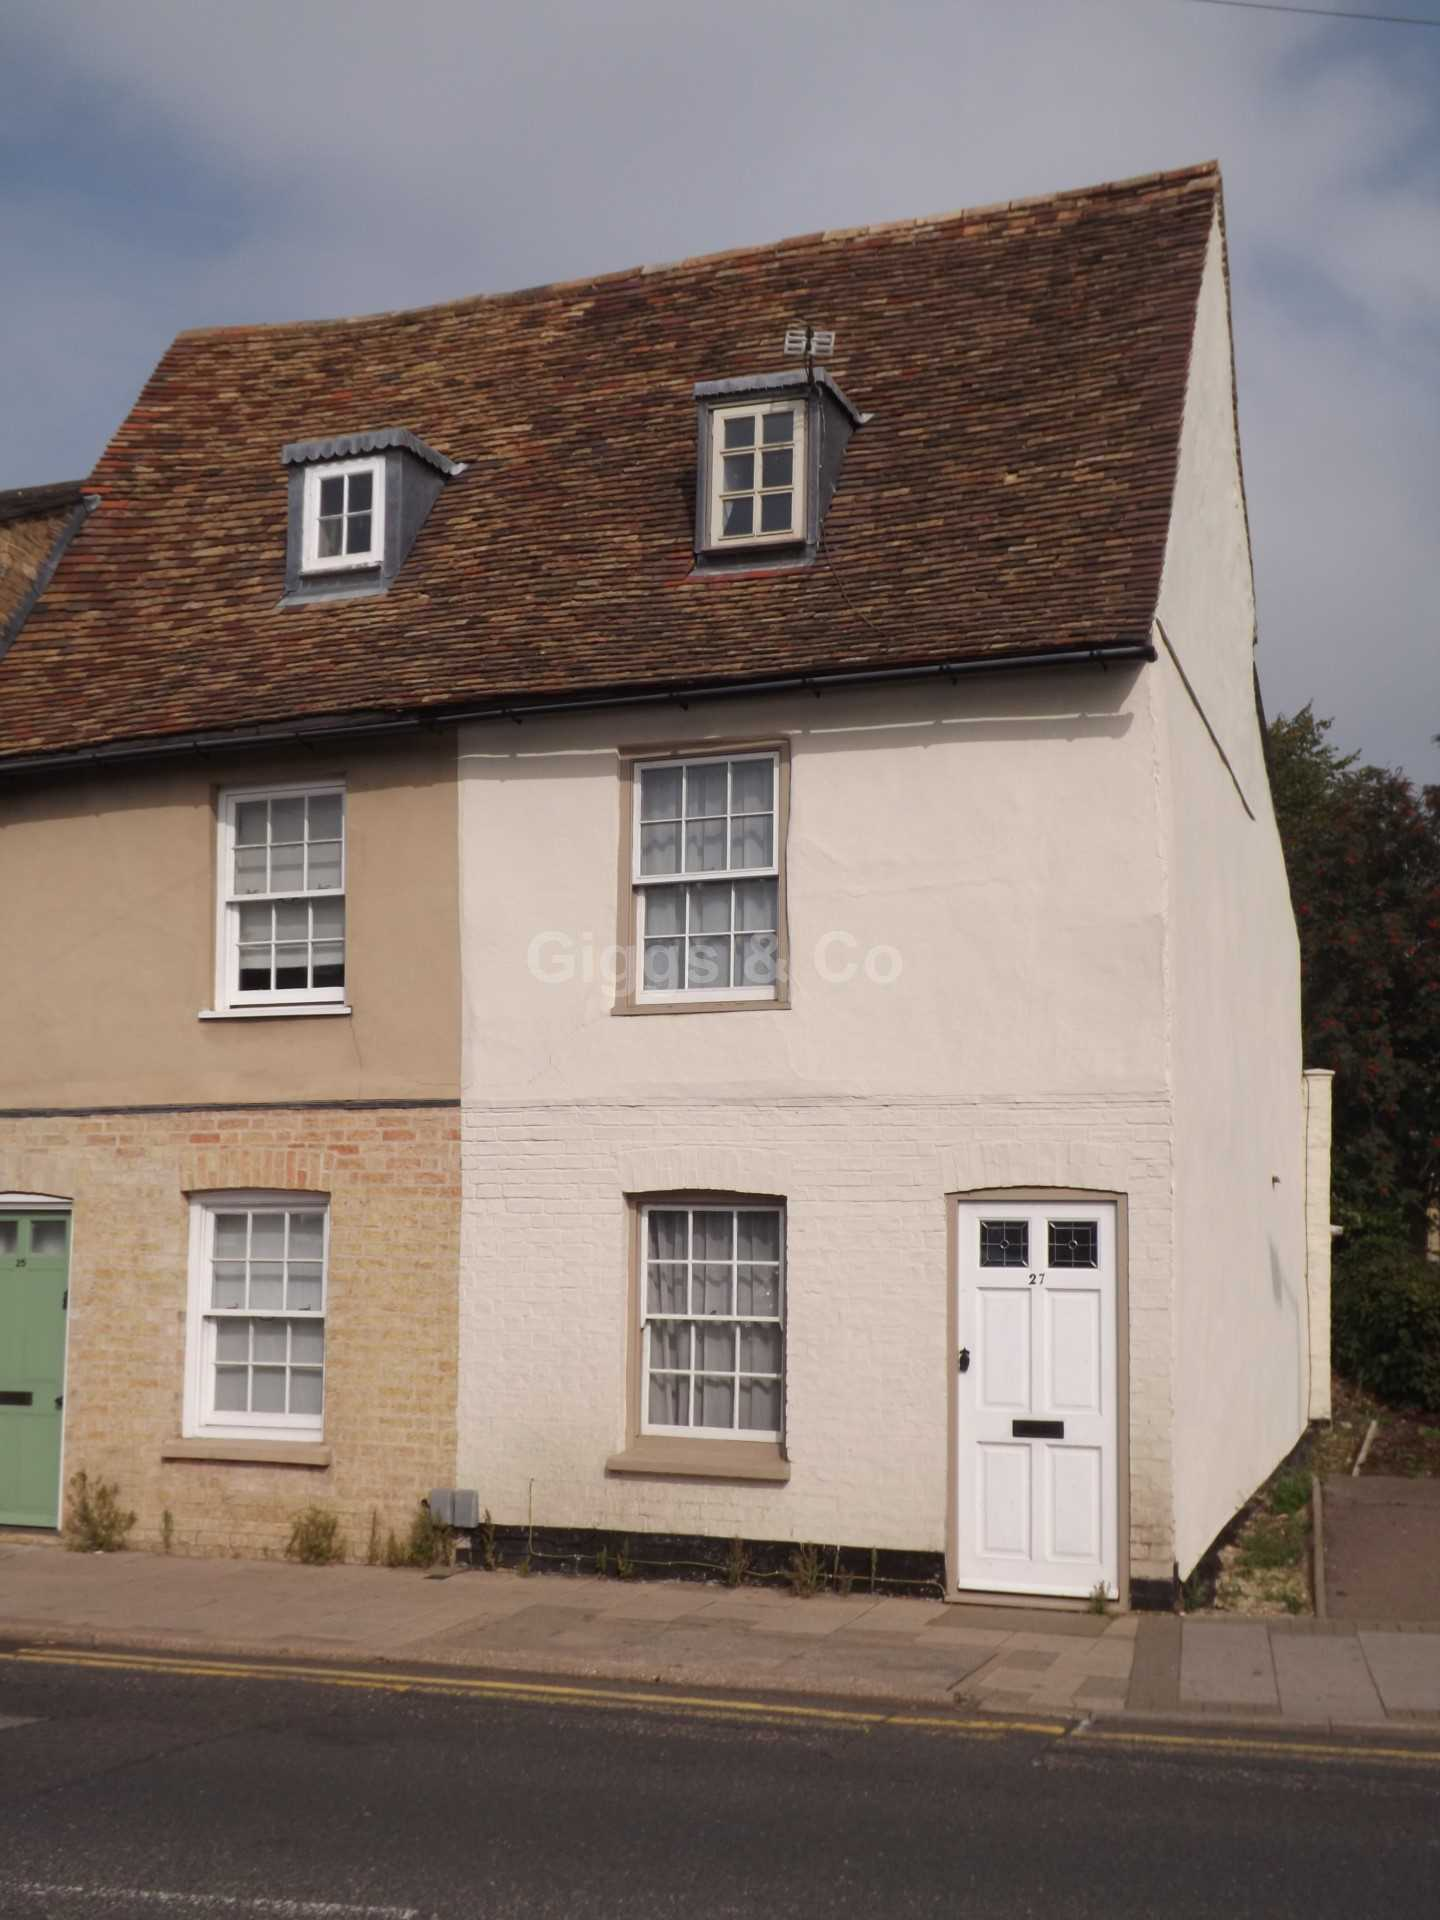 2 bed end-of-terrace-house to rent in Cambridge Street, St Neots  - Property Image 4